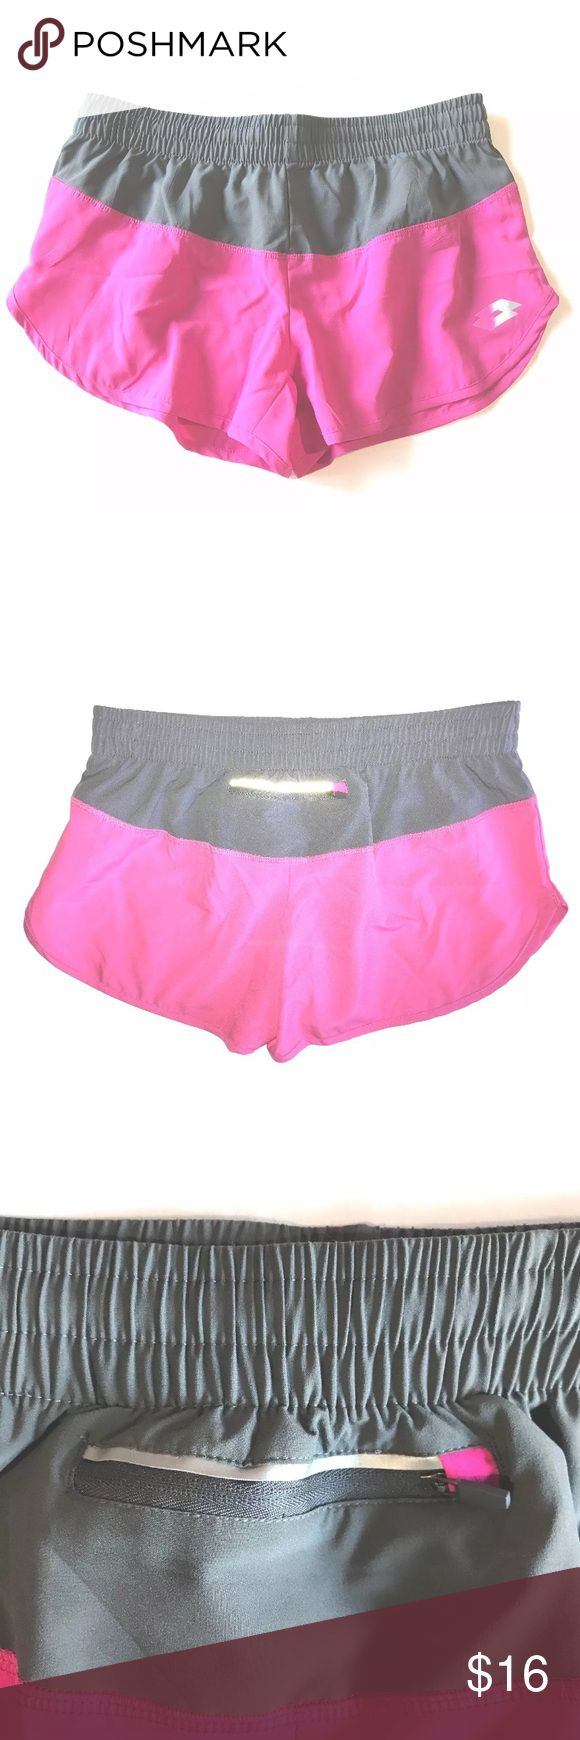 "NEW Lotto X-Dry Women's Running Shorts NEW Lotto X-Dry Soft Women's Running Shorts Pink & Gray SIZE Large   	•	Thin, lightweight running shorts 	•	Stretch waistband, with inside drawstring 	•	Small back key pocket 	•	Size: Large 	•	Waist: 30 inches around unstretched 	•	3"" inseam 	•	100% Polyester  Thank you so much! Lotto Shorts"